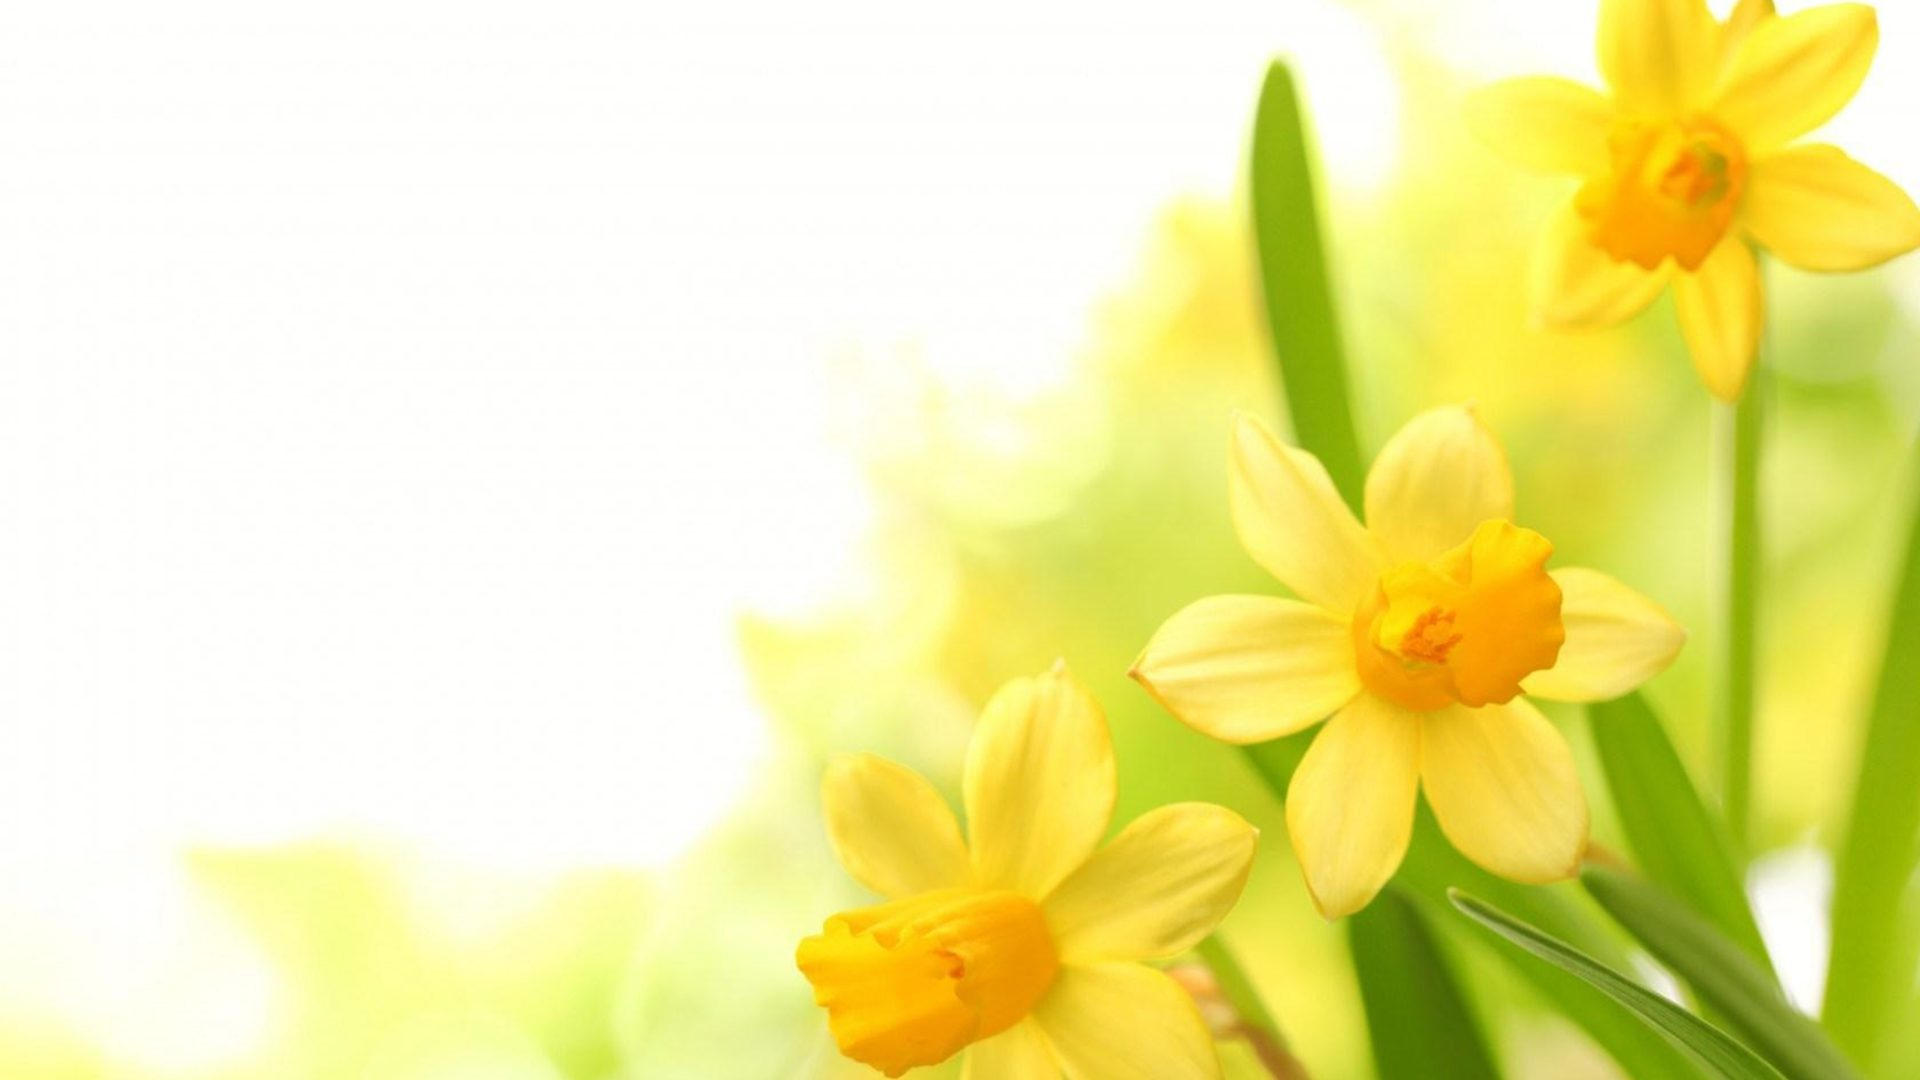 Cute Bunny Wallpaper Hd Plants Narcissus Yellow Flower Wallpapers13 Com